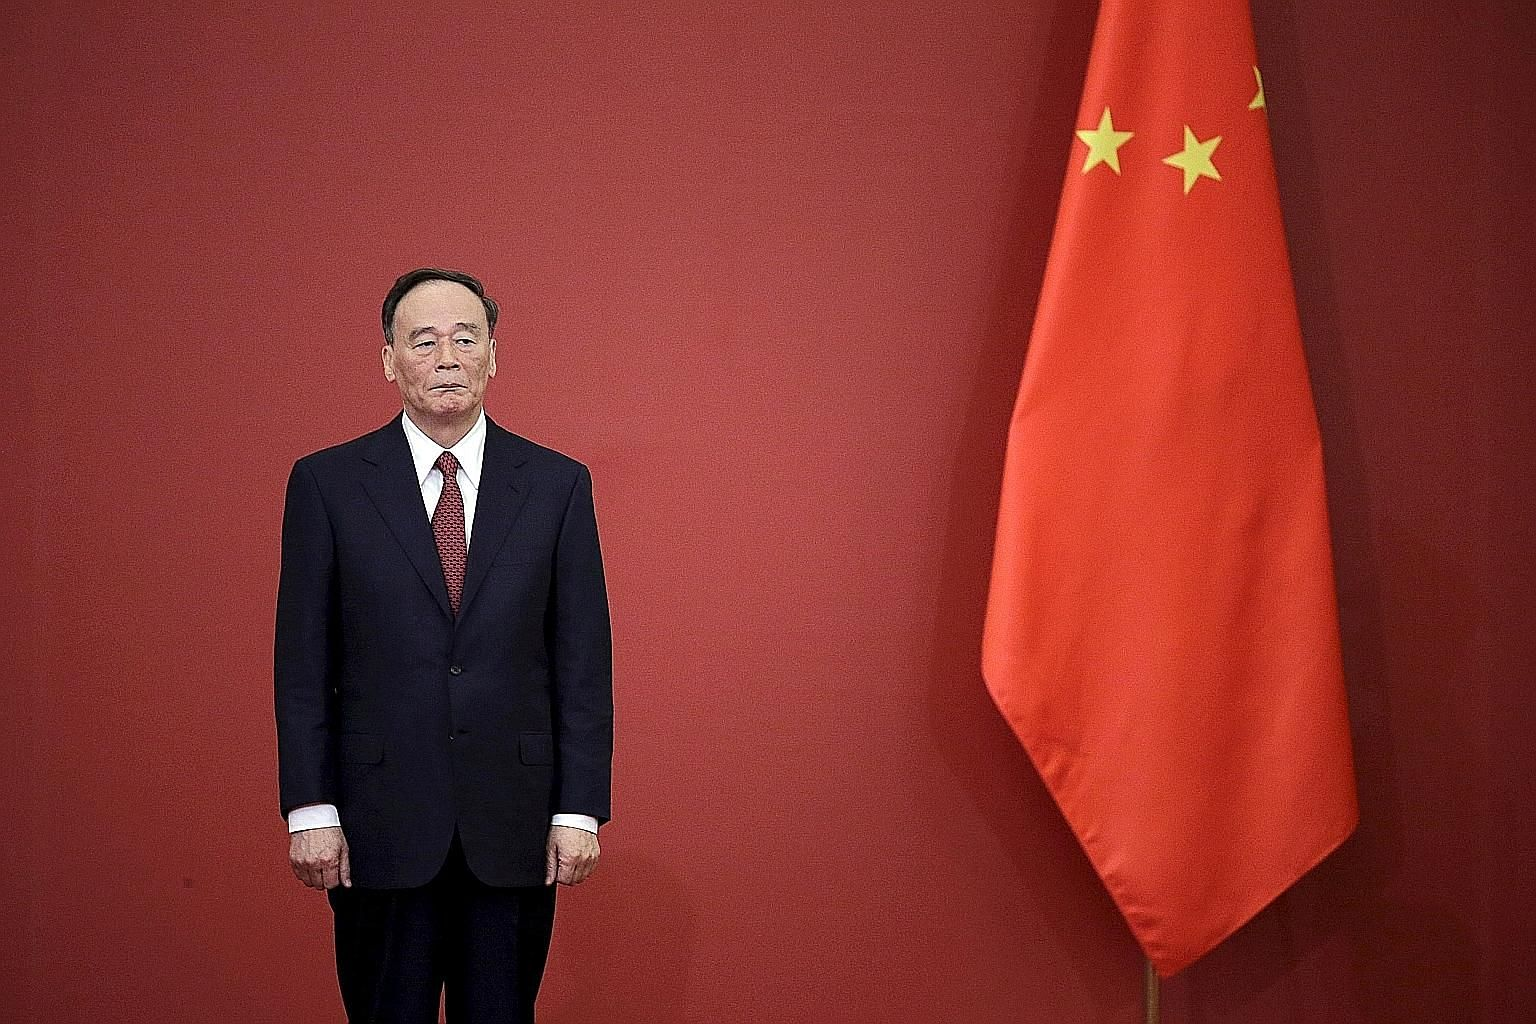 Mr Wang Qishan (in a 2015 photo) runs the Communist Party's anti-corruption watchdog and is widely considered to be its most powerful man after President Xi Jinping.